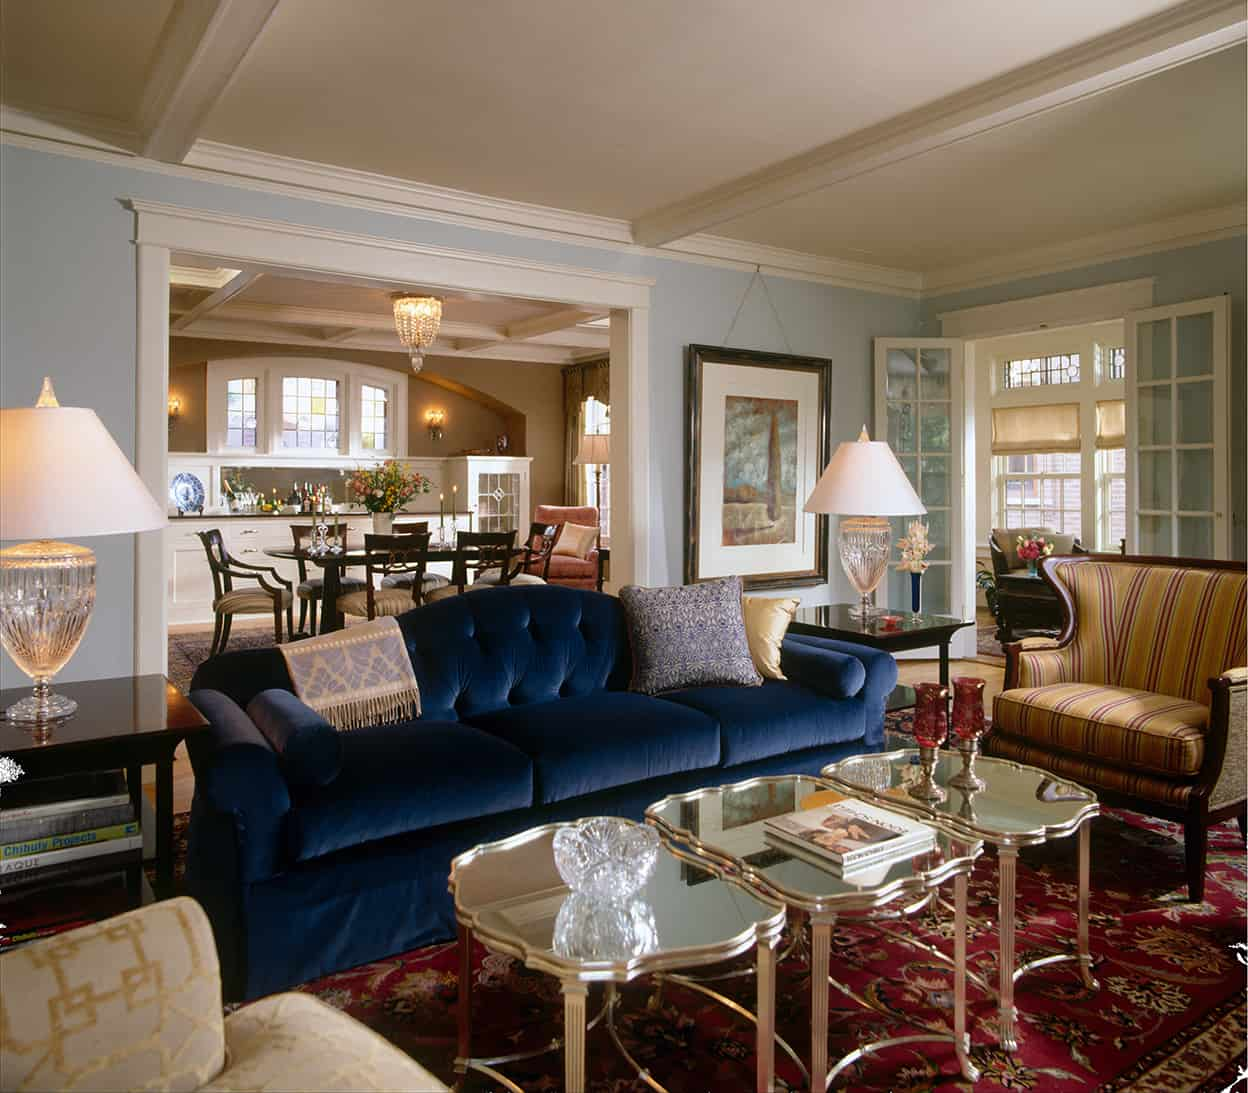 While much of the rest of the living room is neutral, the light blue walls, royal blue velvety couch, and red Persian rug add pops of color to the luxurious interior.